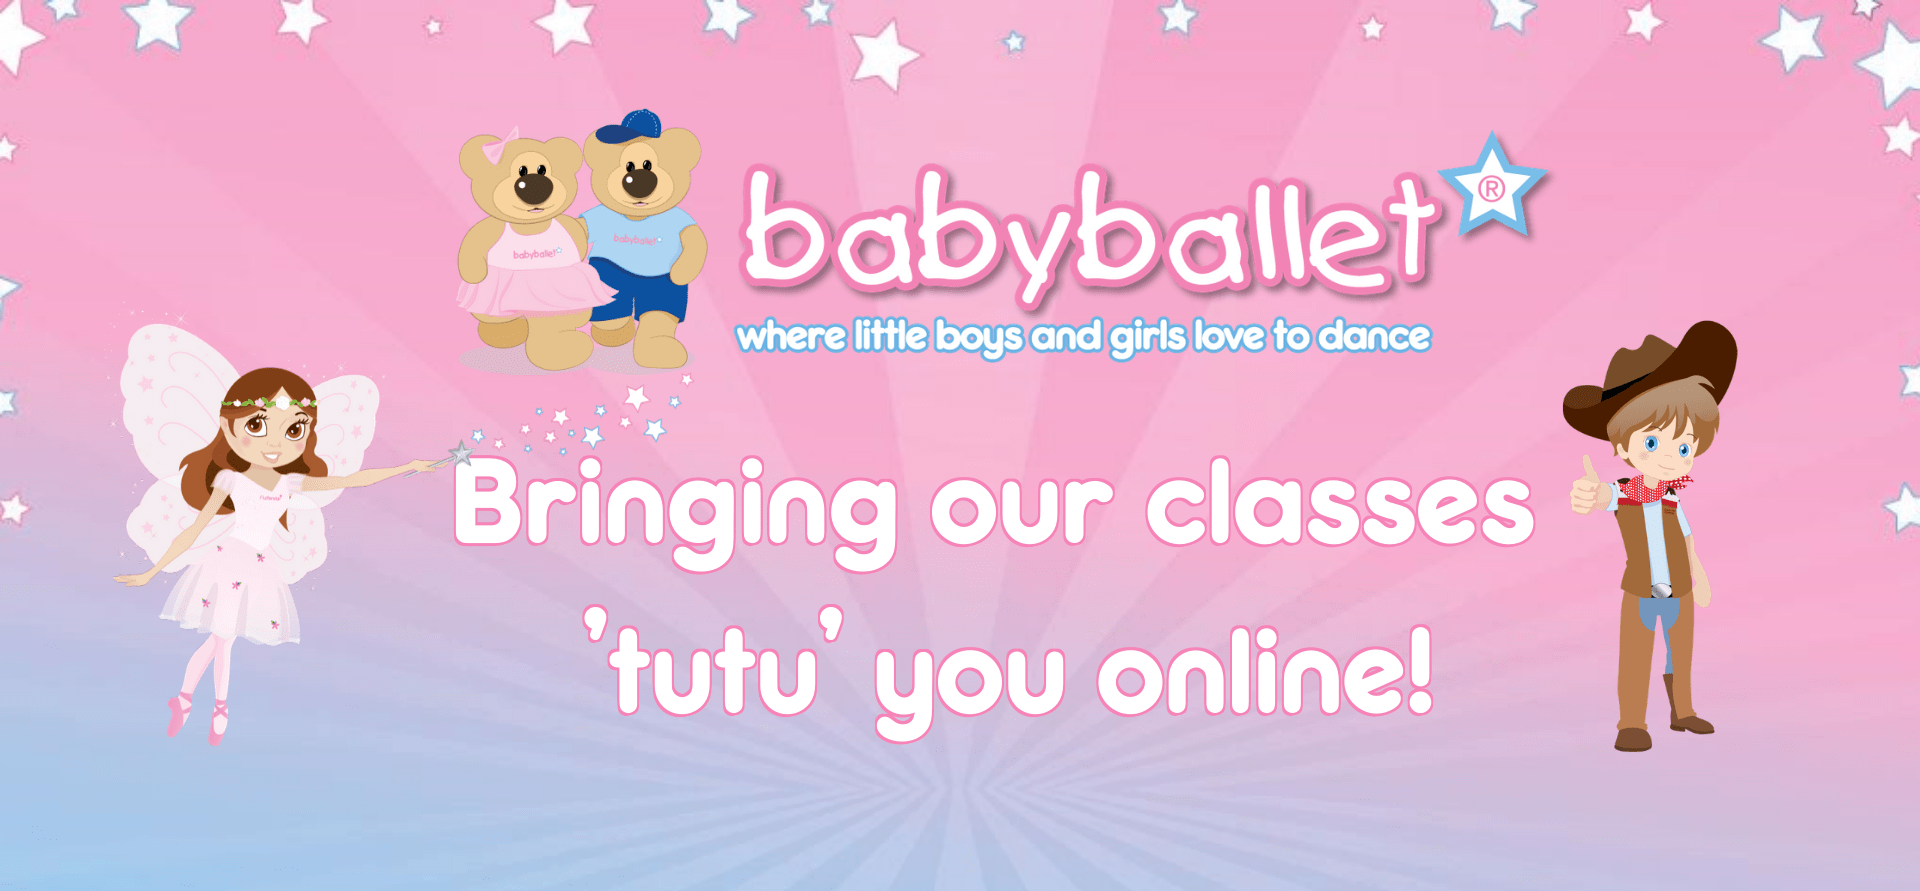 Coronavirus measures at babyballet. Virtual dance classes taking place across the UK